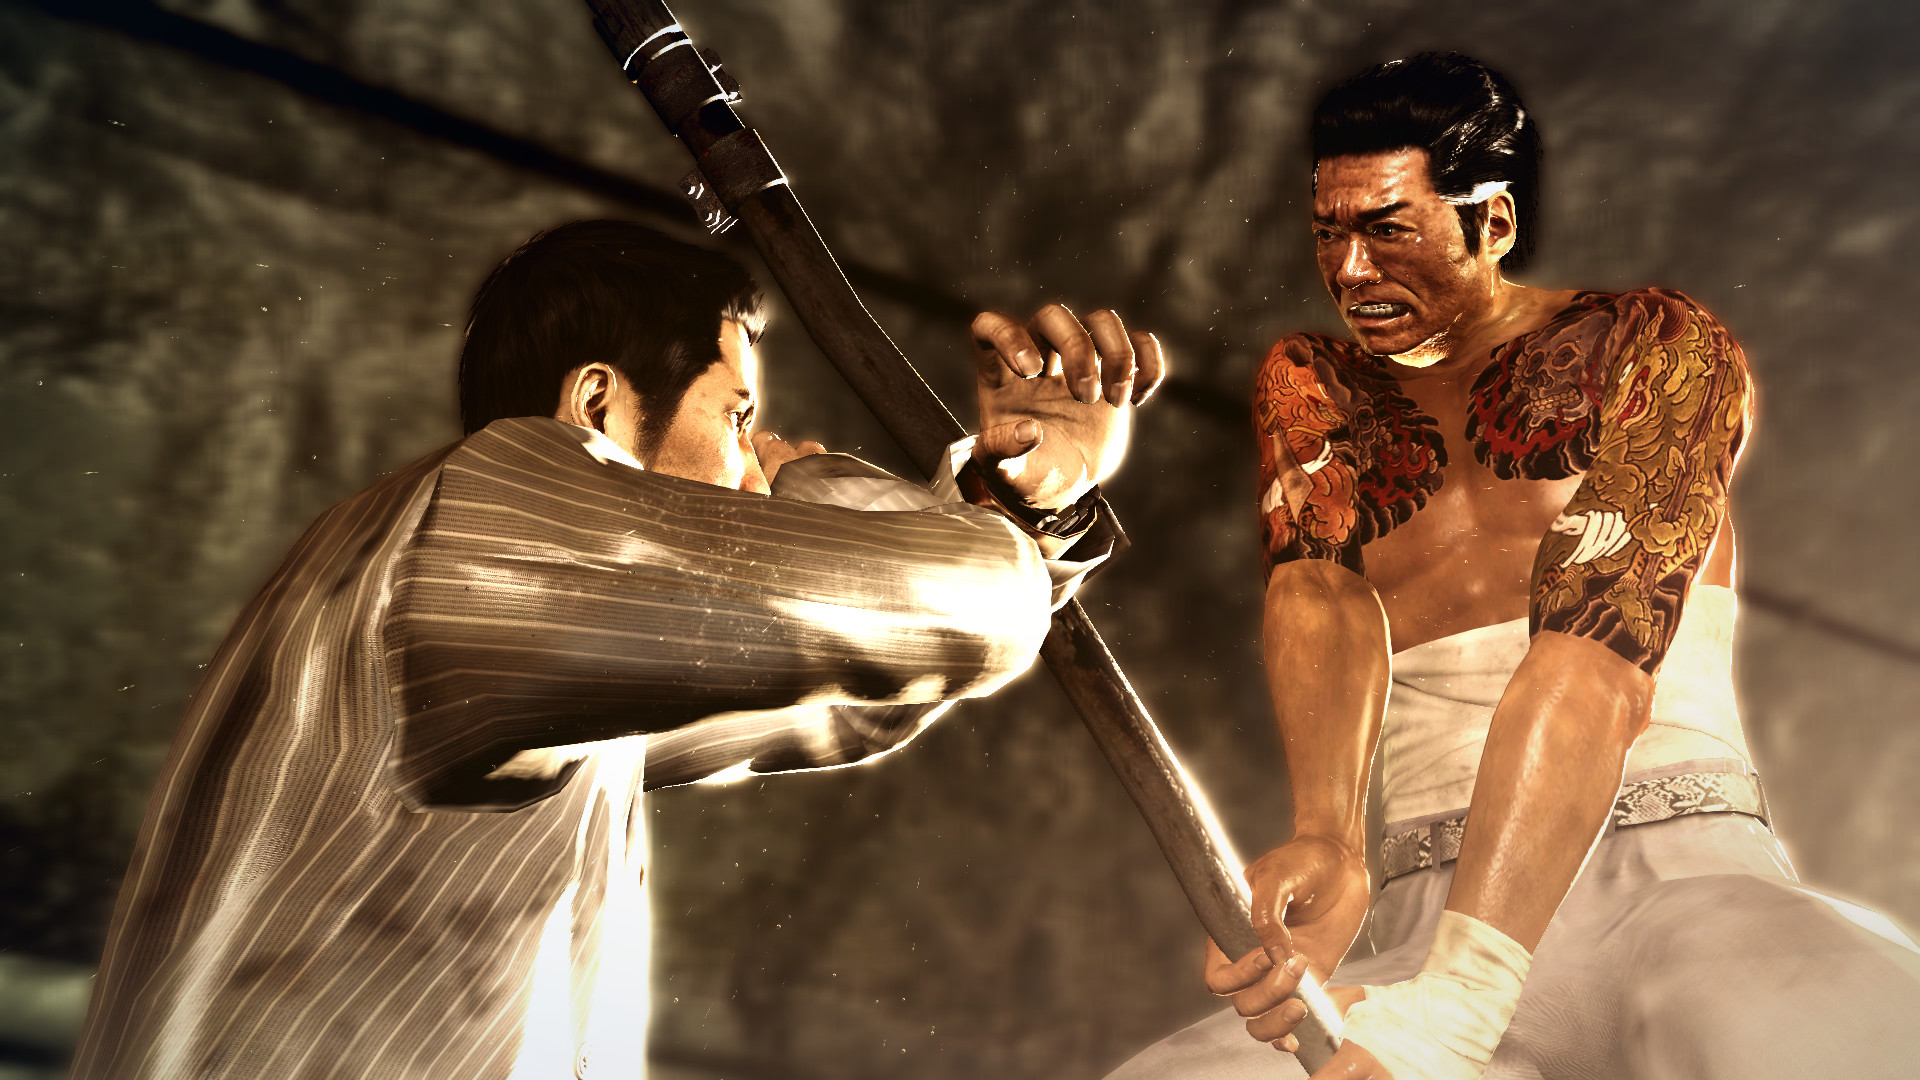 Protagonist Kiryu is locked in fierce combat with an enemy.